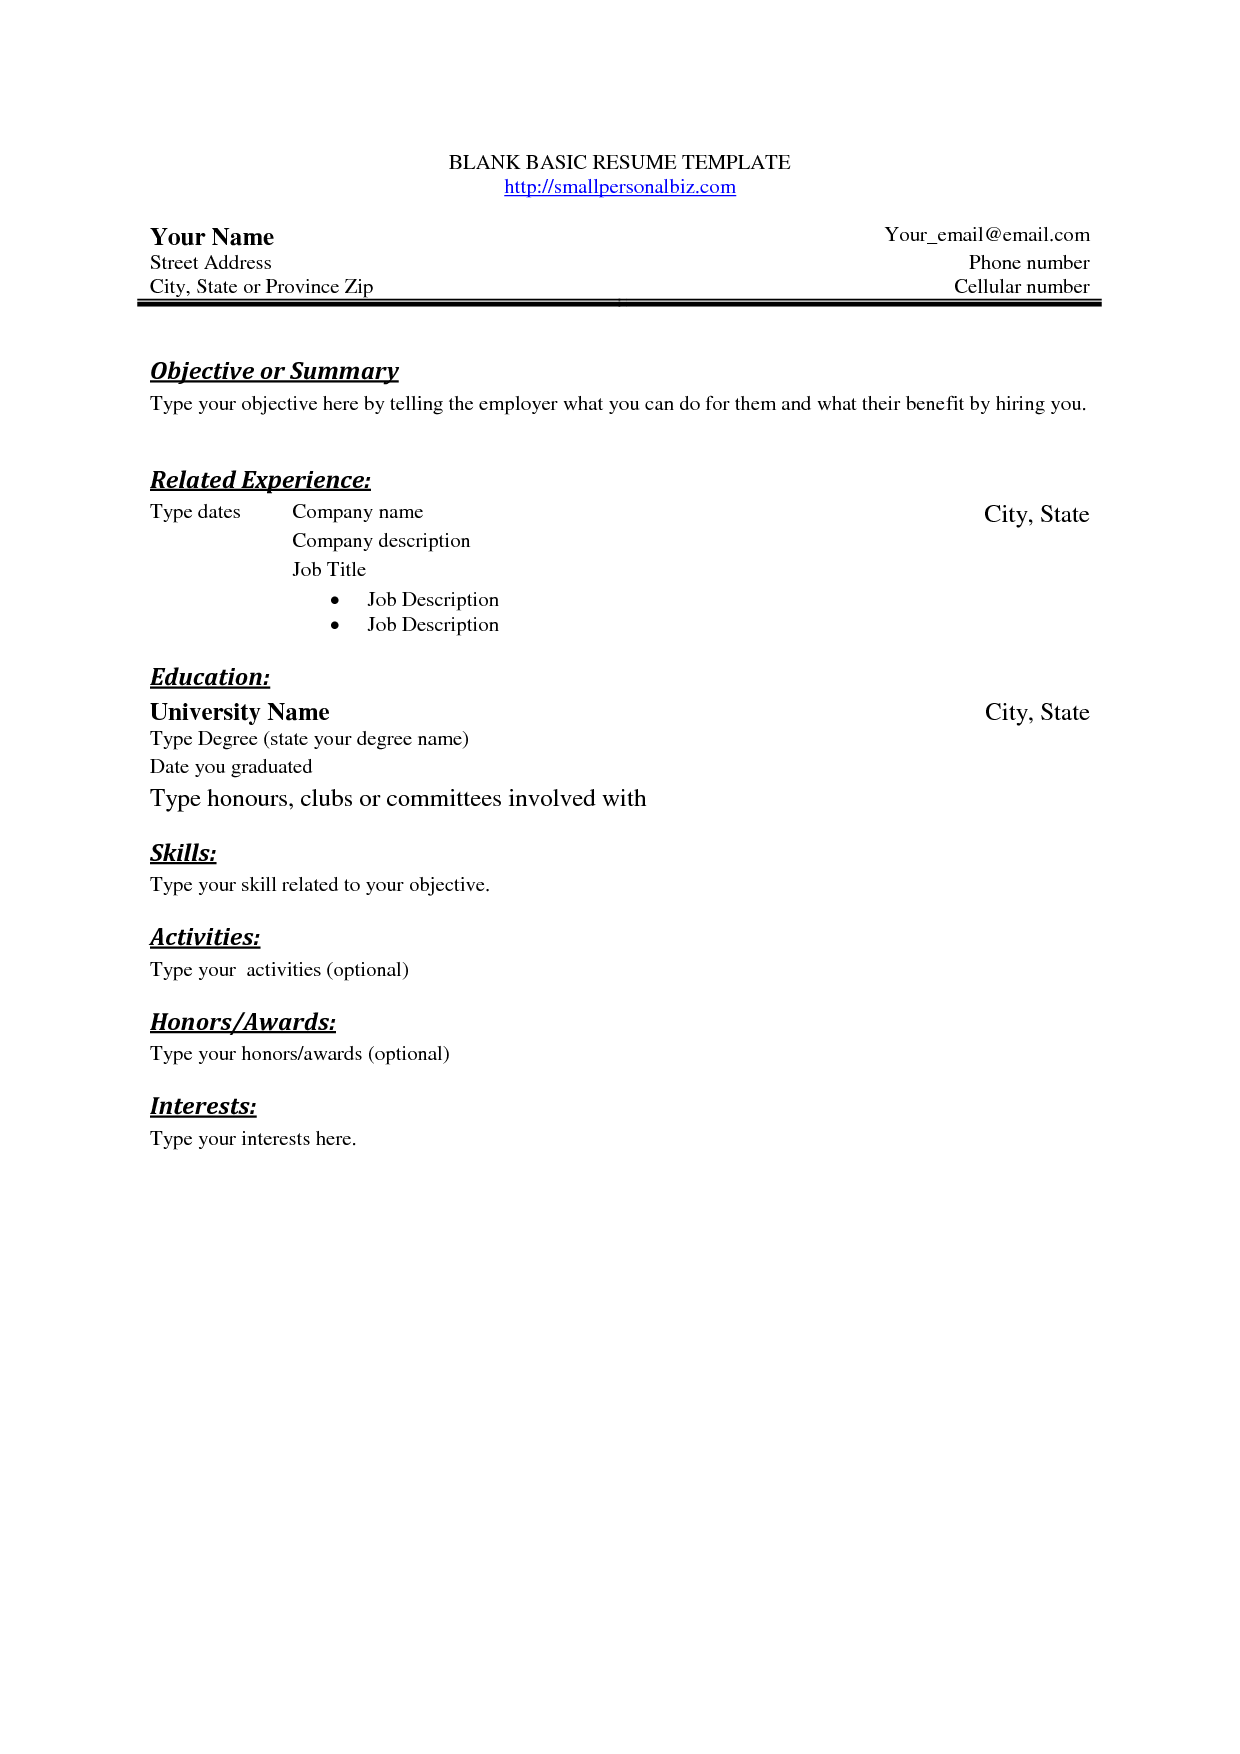 Free Basic Blank Resume Template  Free Basic Sample Resume  Beauty tips  Sample resume format